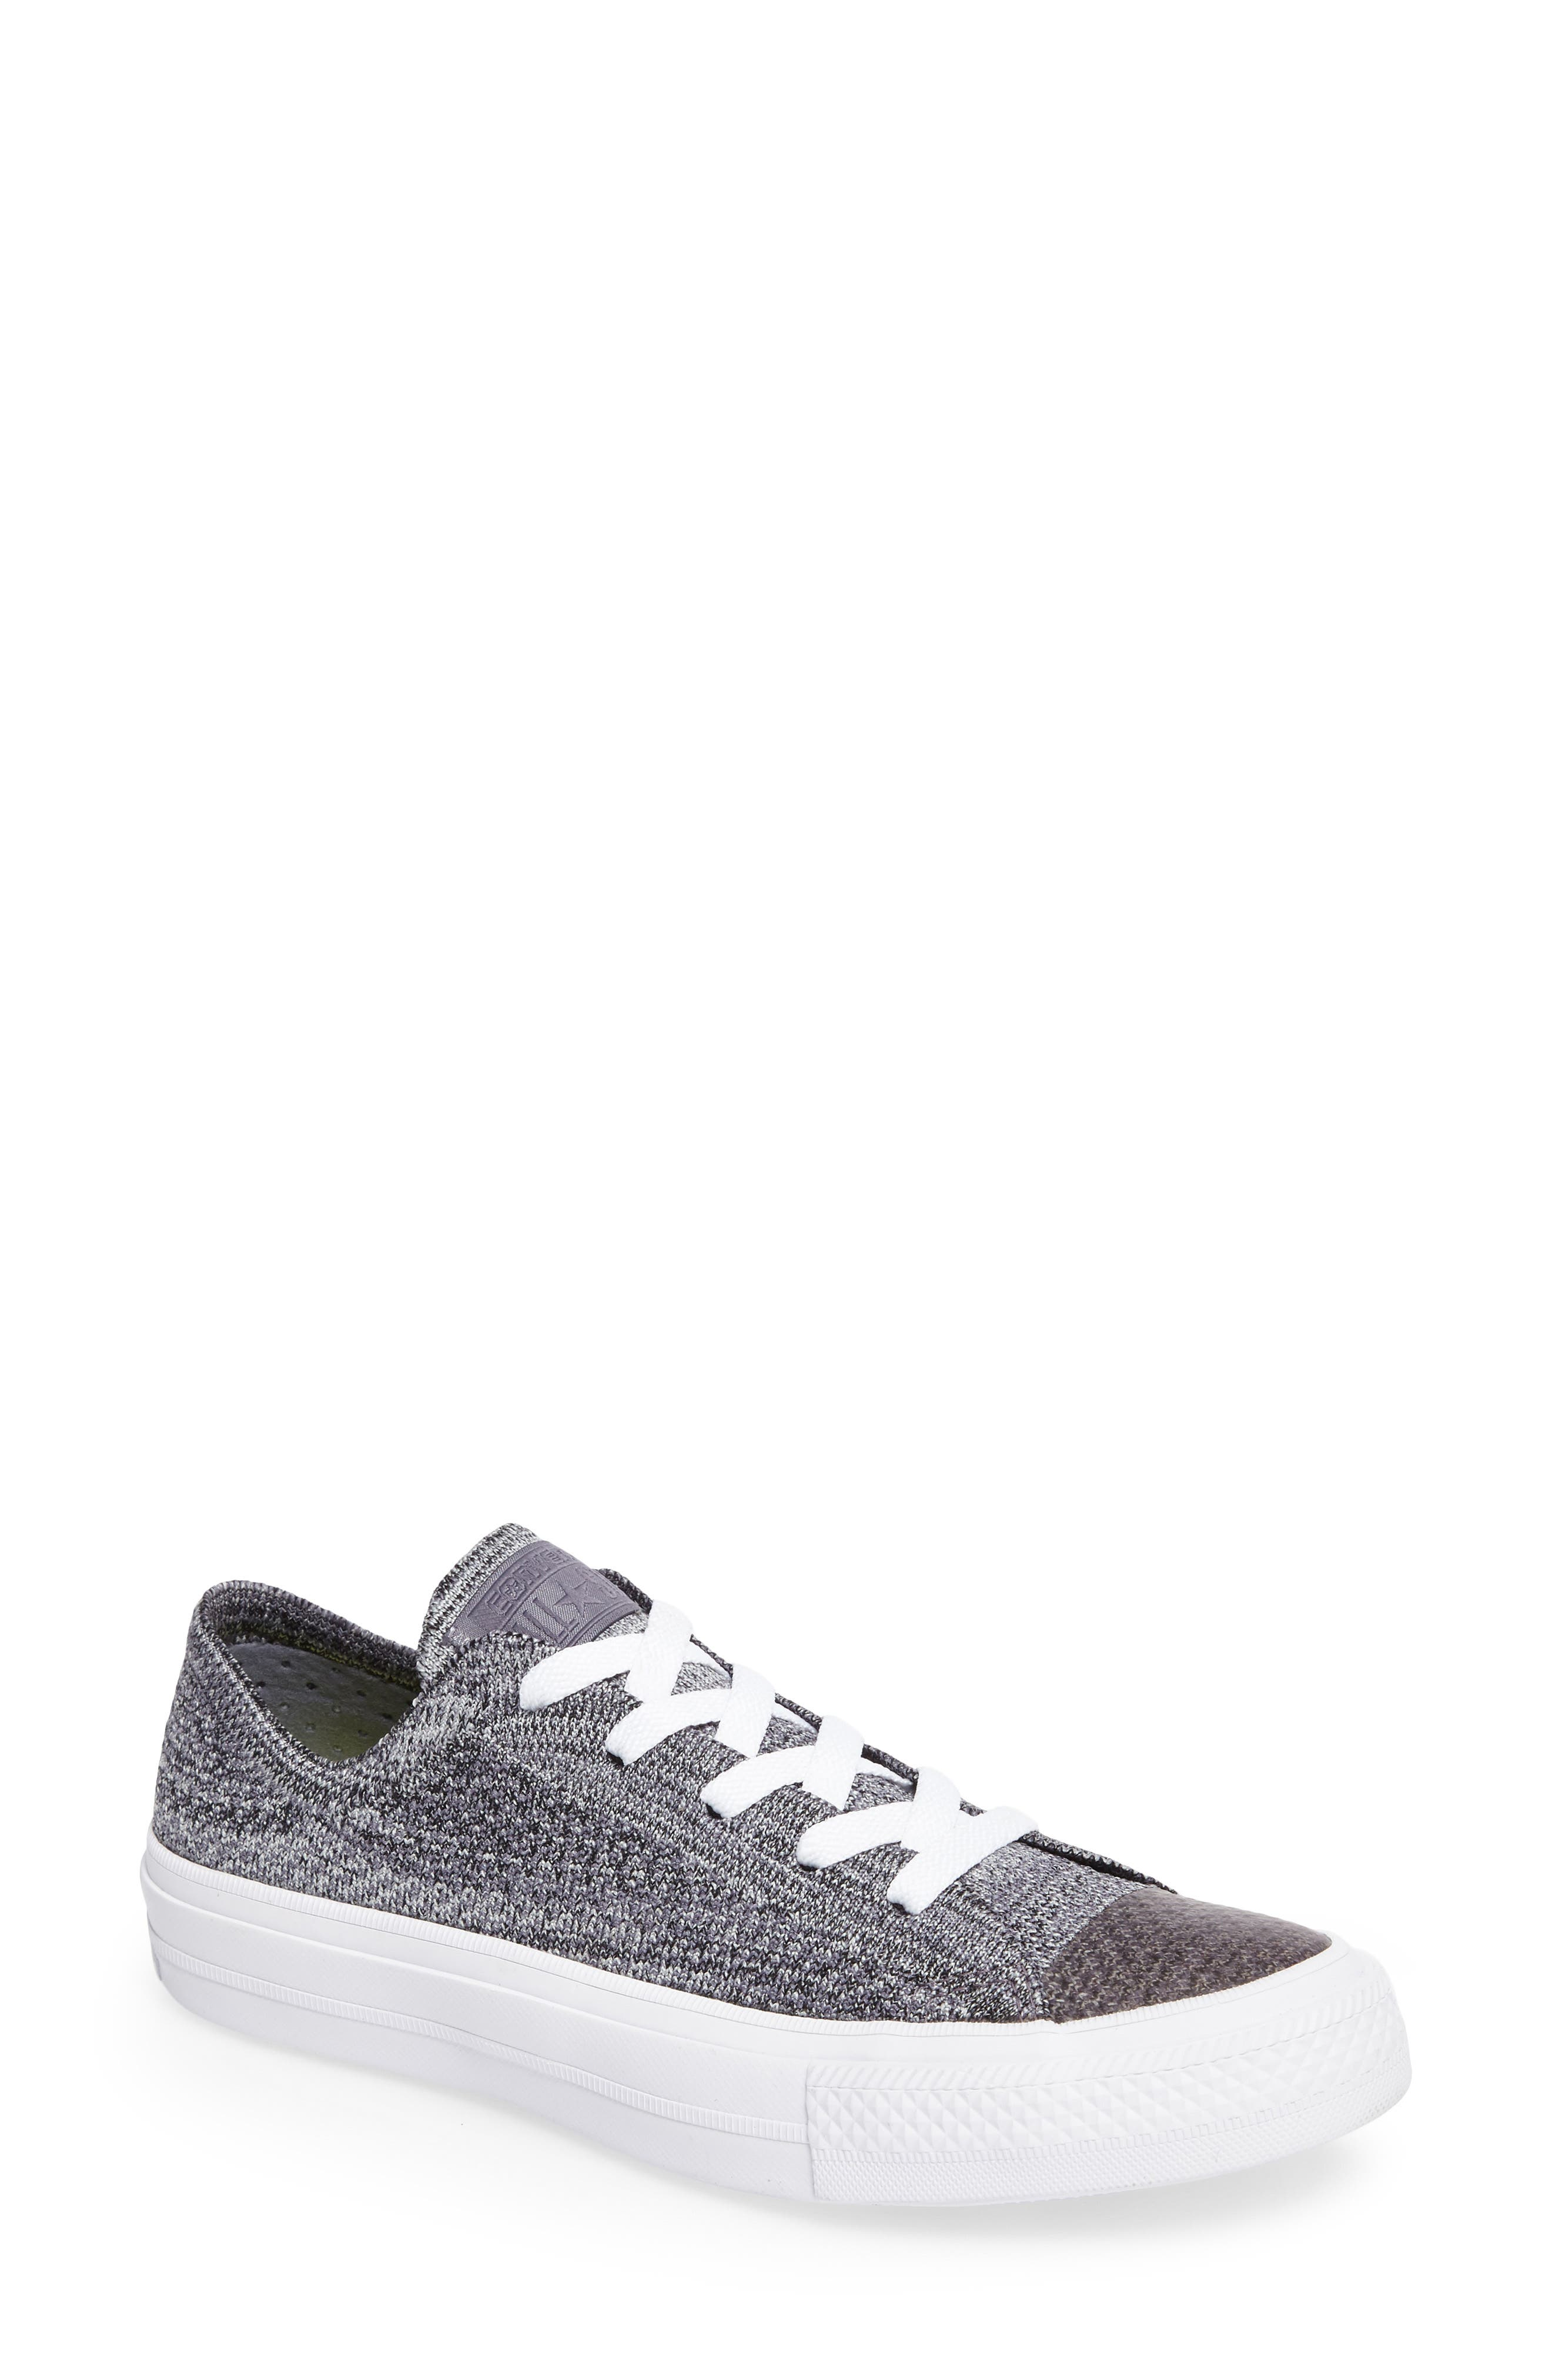 All Star<sup>®</sup> Flyknit Low Sneaker,                         Main,                         color, 027